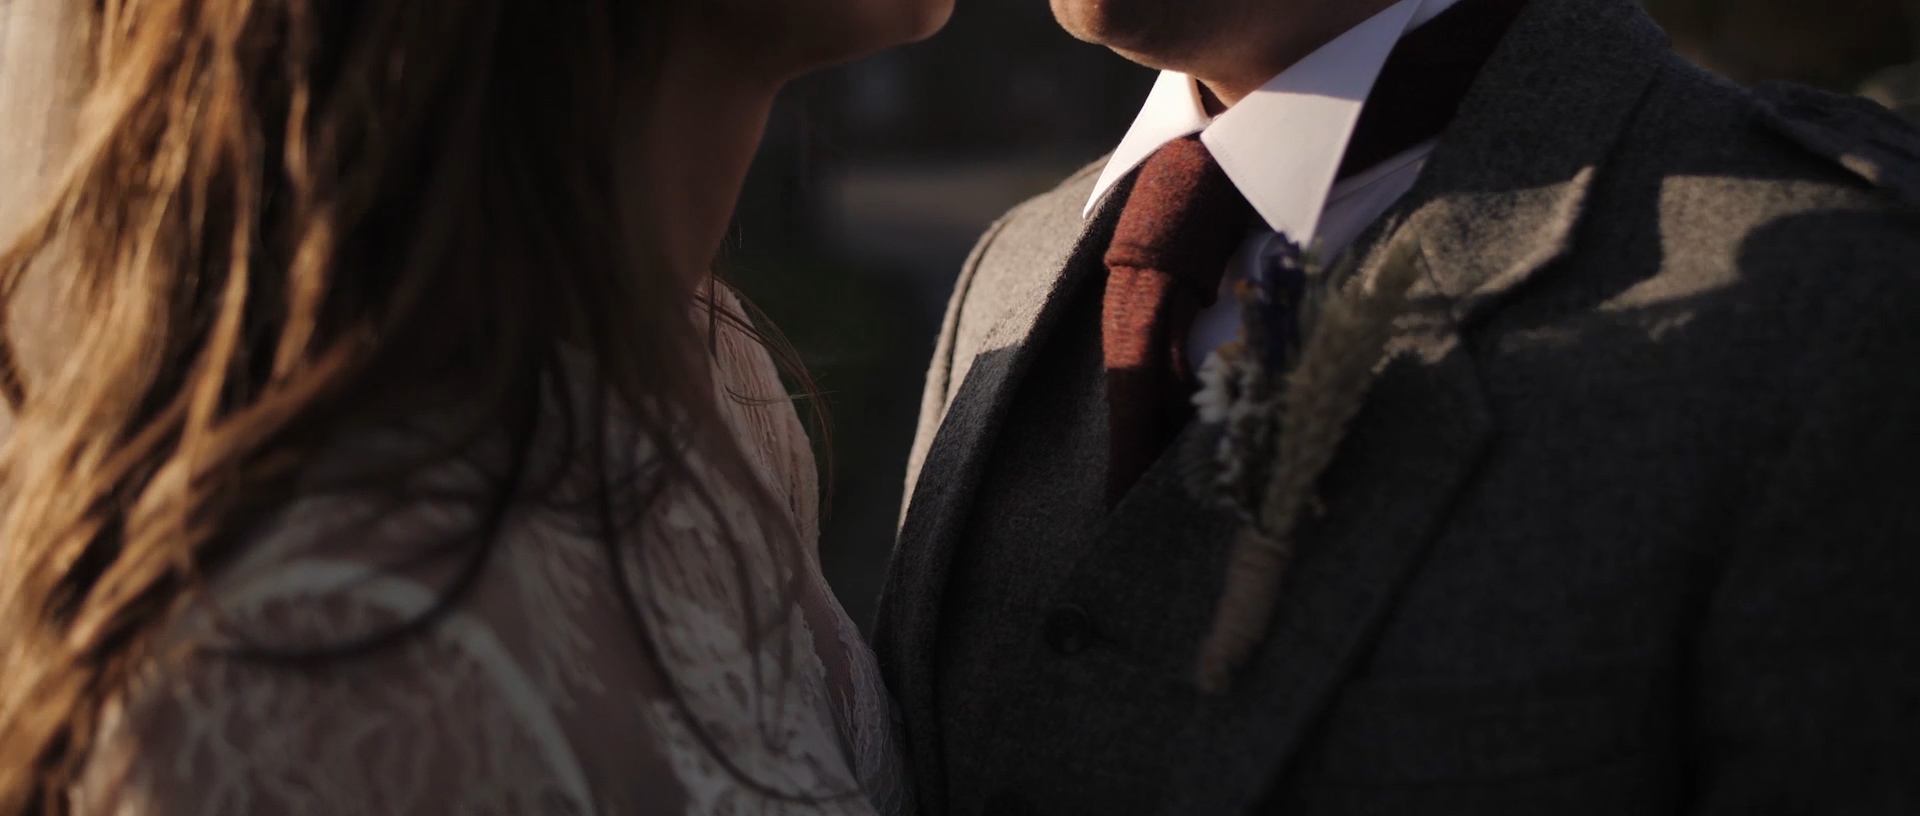 the-cow-shed-crail-wedding-videographer_LL_04.jpg